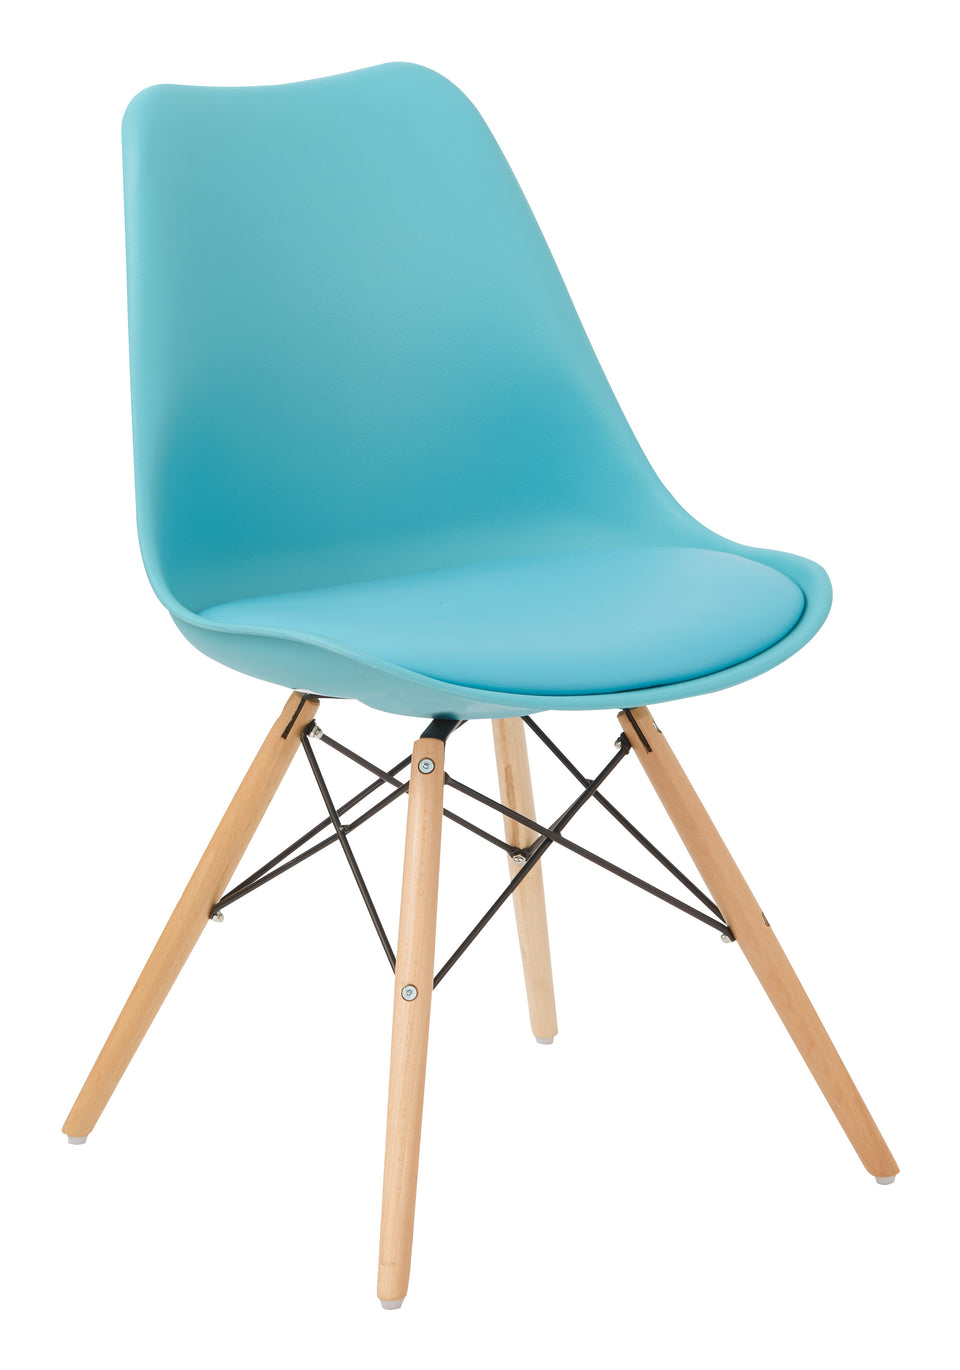 mid century modern aimes blue bucket chair with natural post legs scandinavian design inspired from decurban.com